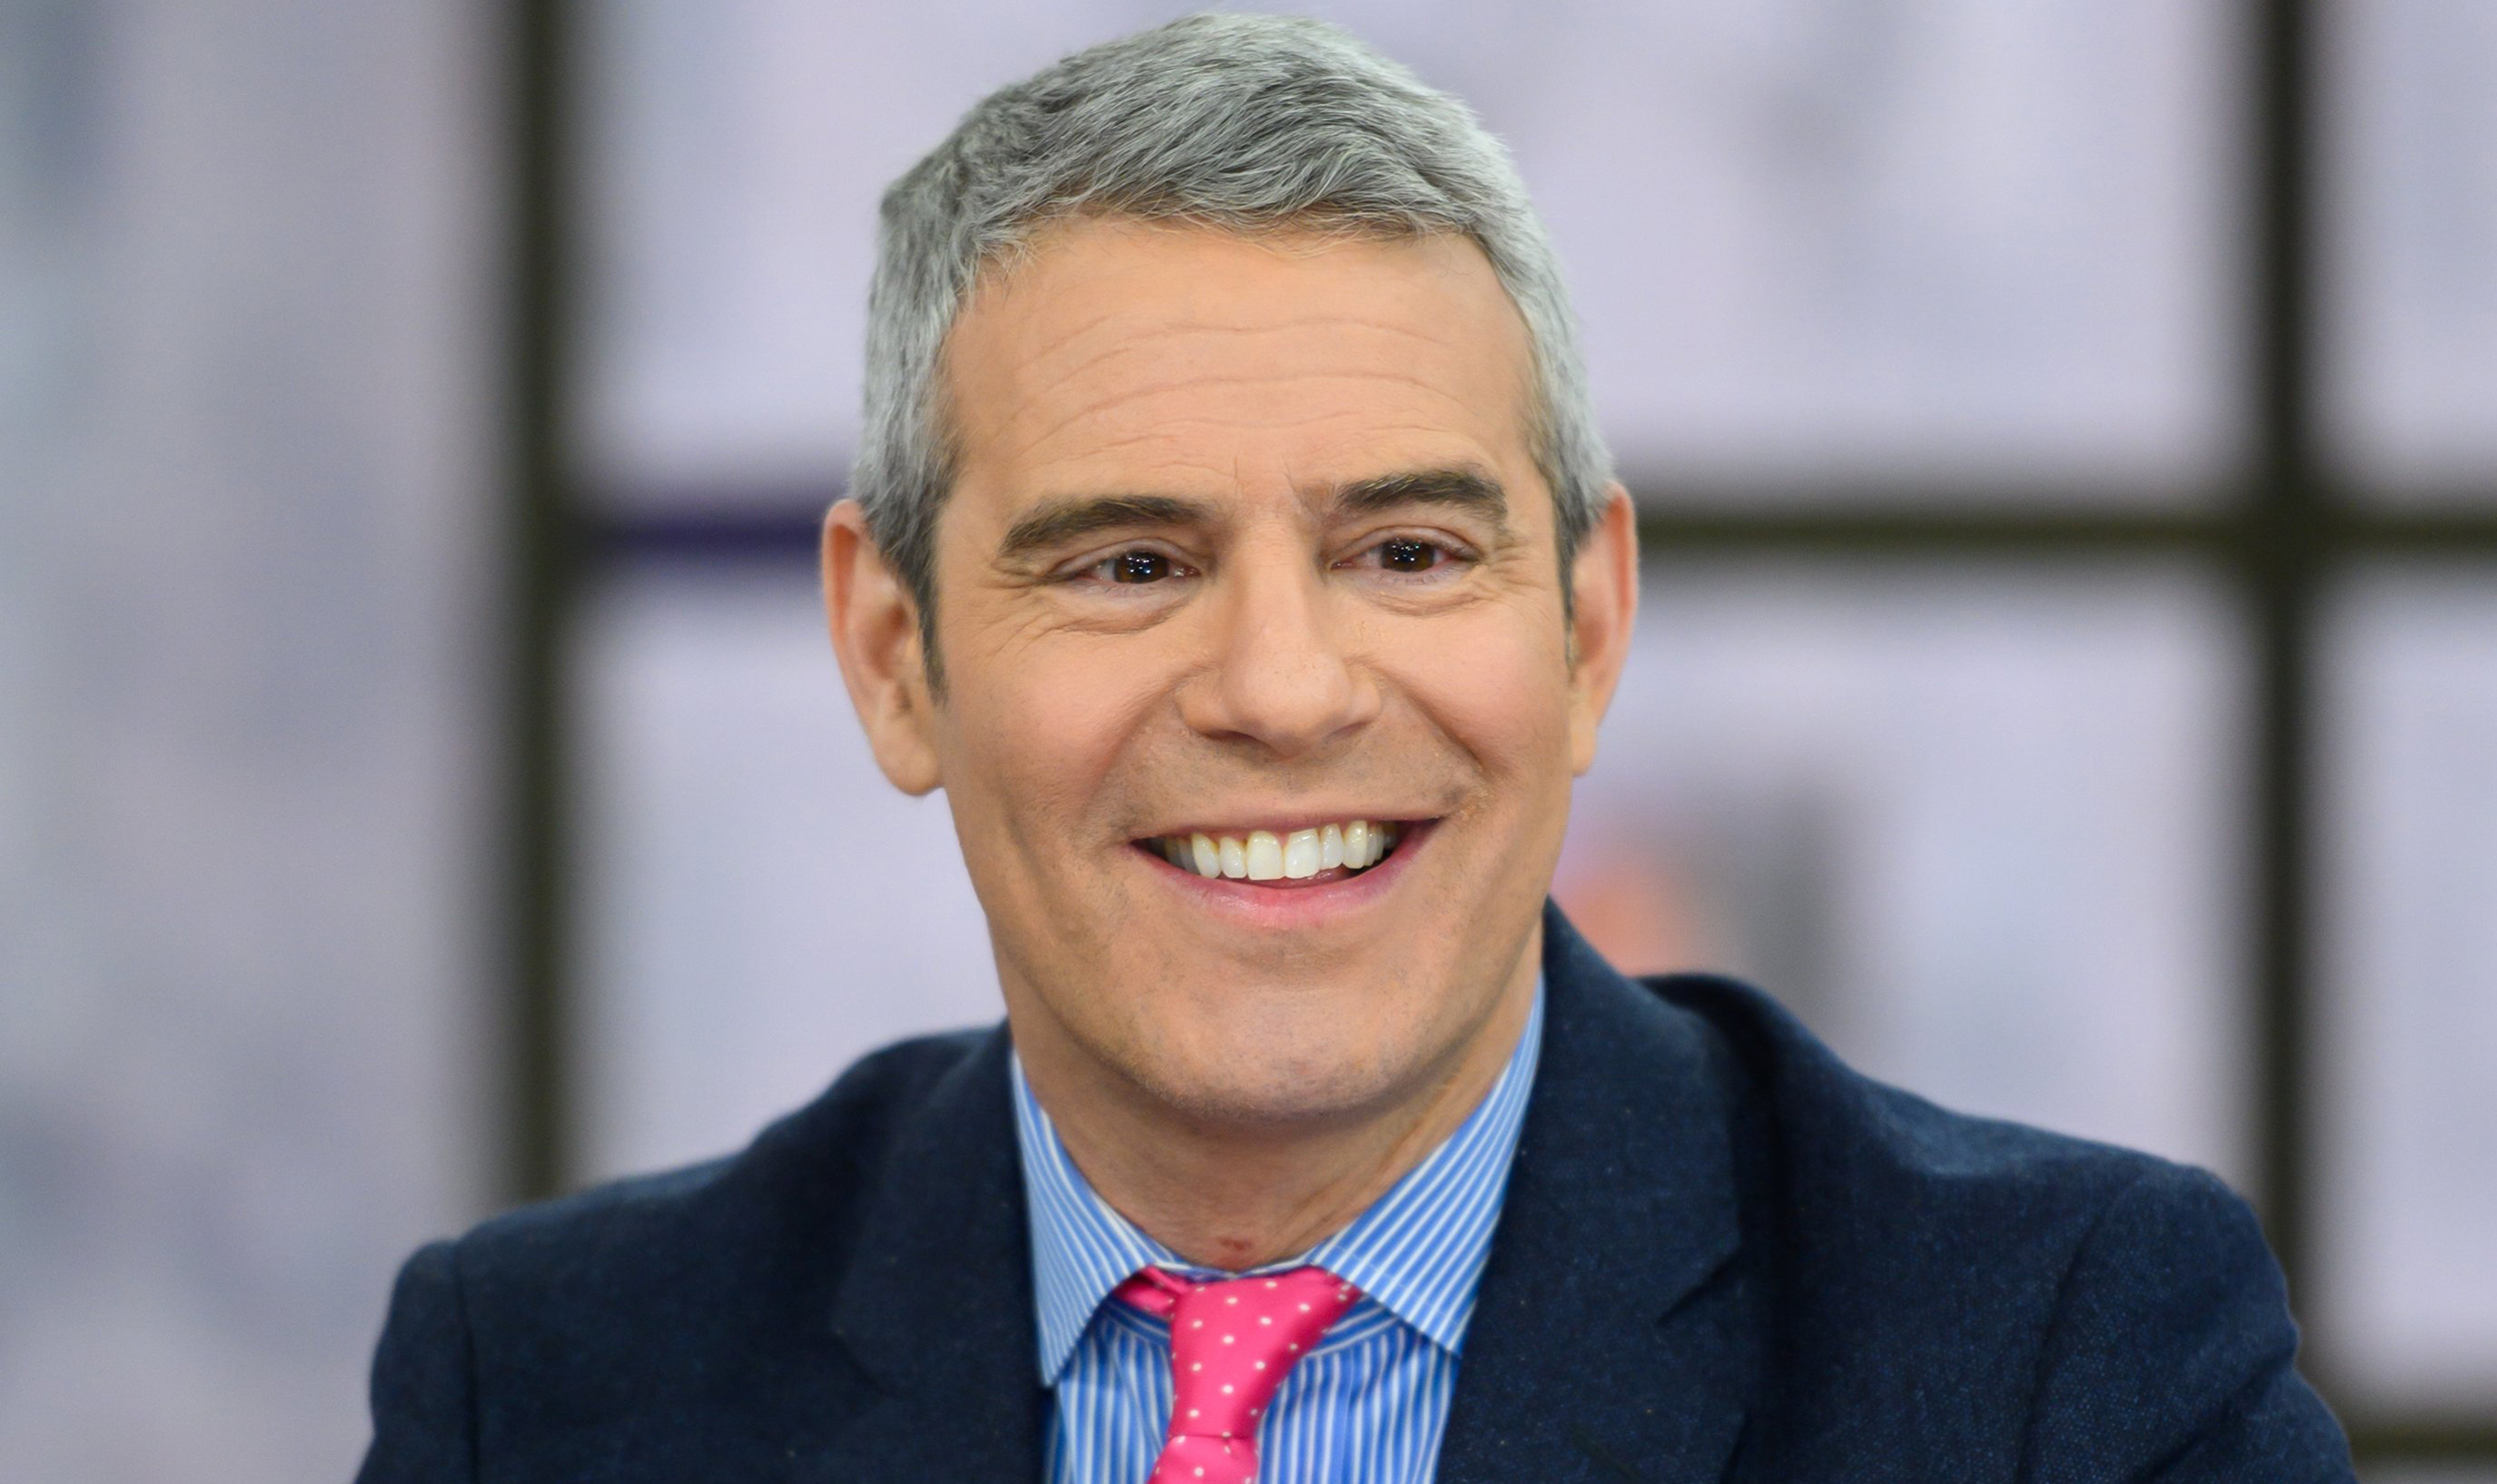 Andy-Cohen-to-receive-Vito-Russo-Award-at-GLAAD-Media-Awards